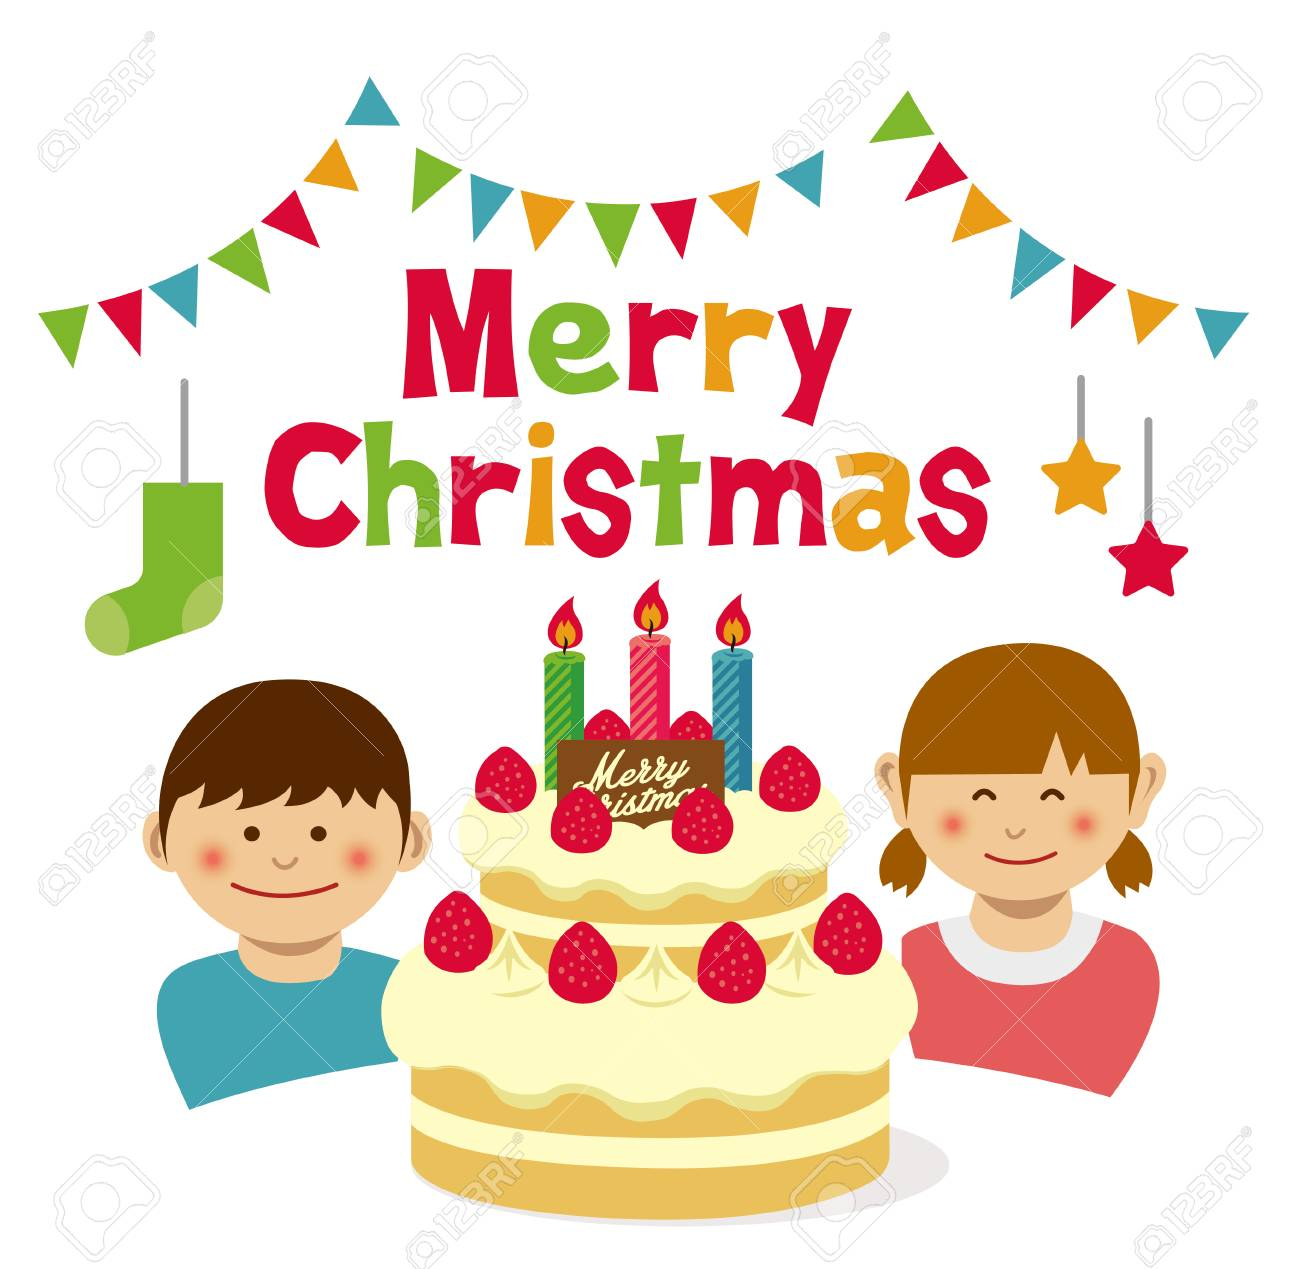 Merry Christmas Birthday Cake And Kids Illustration